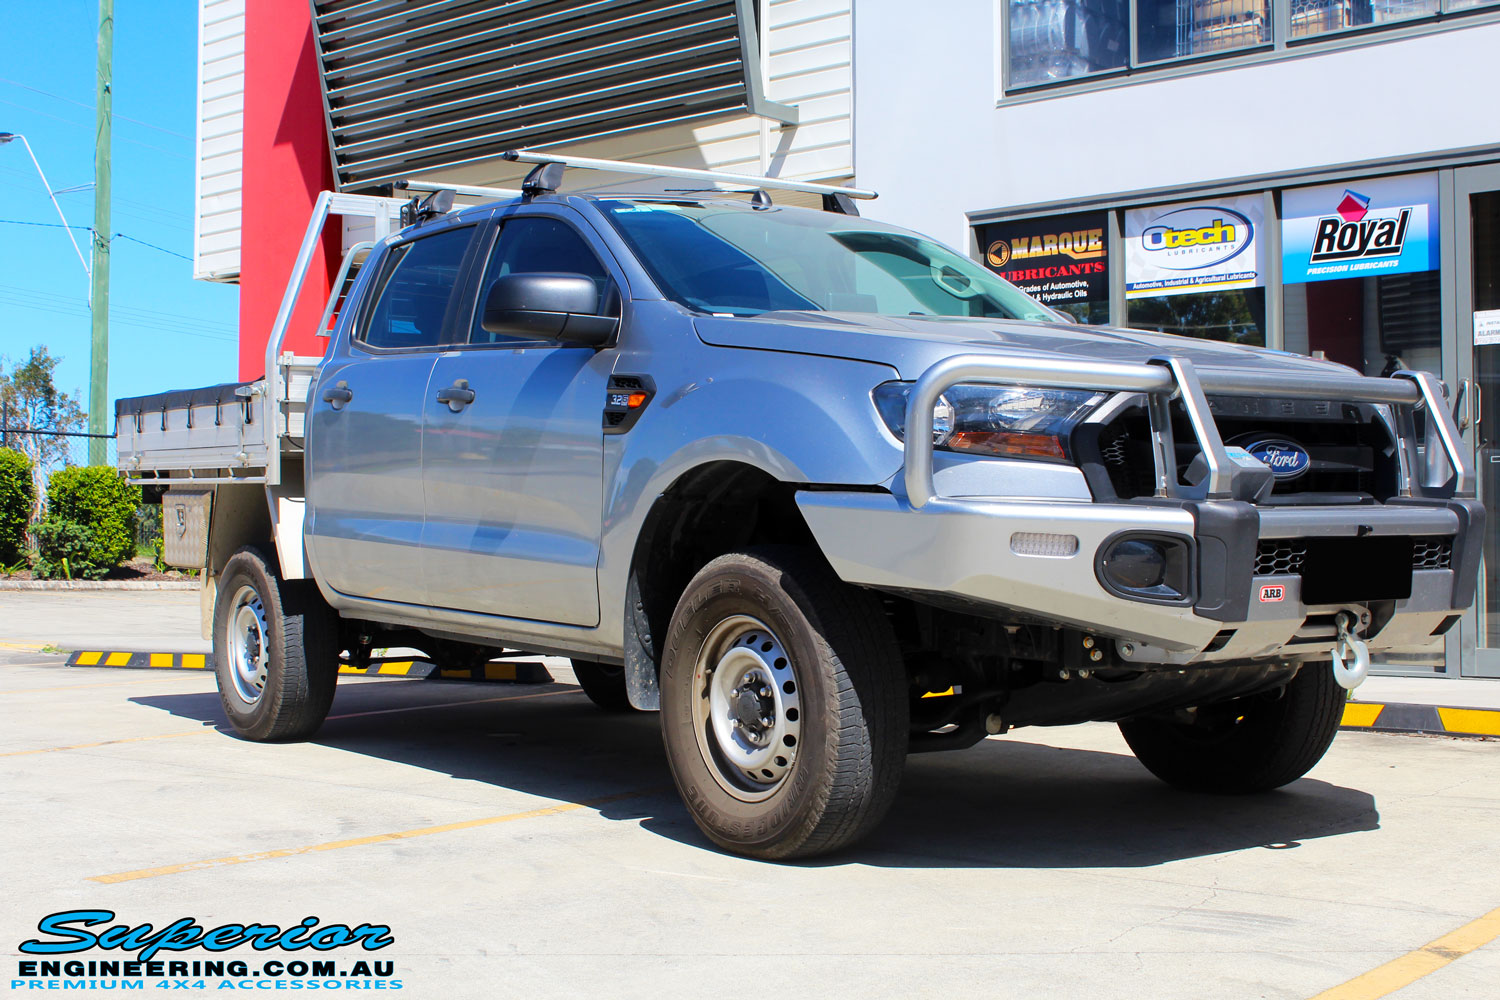 Right front side view of a Silver Ford PX Ranger after fitment of a EFS 40mm Lift Kit